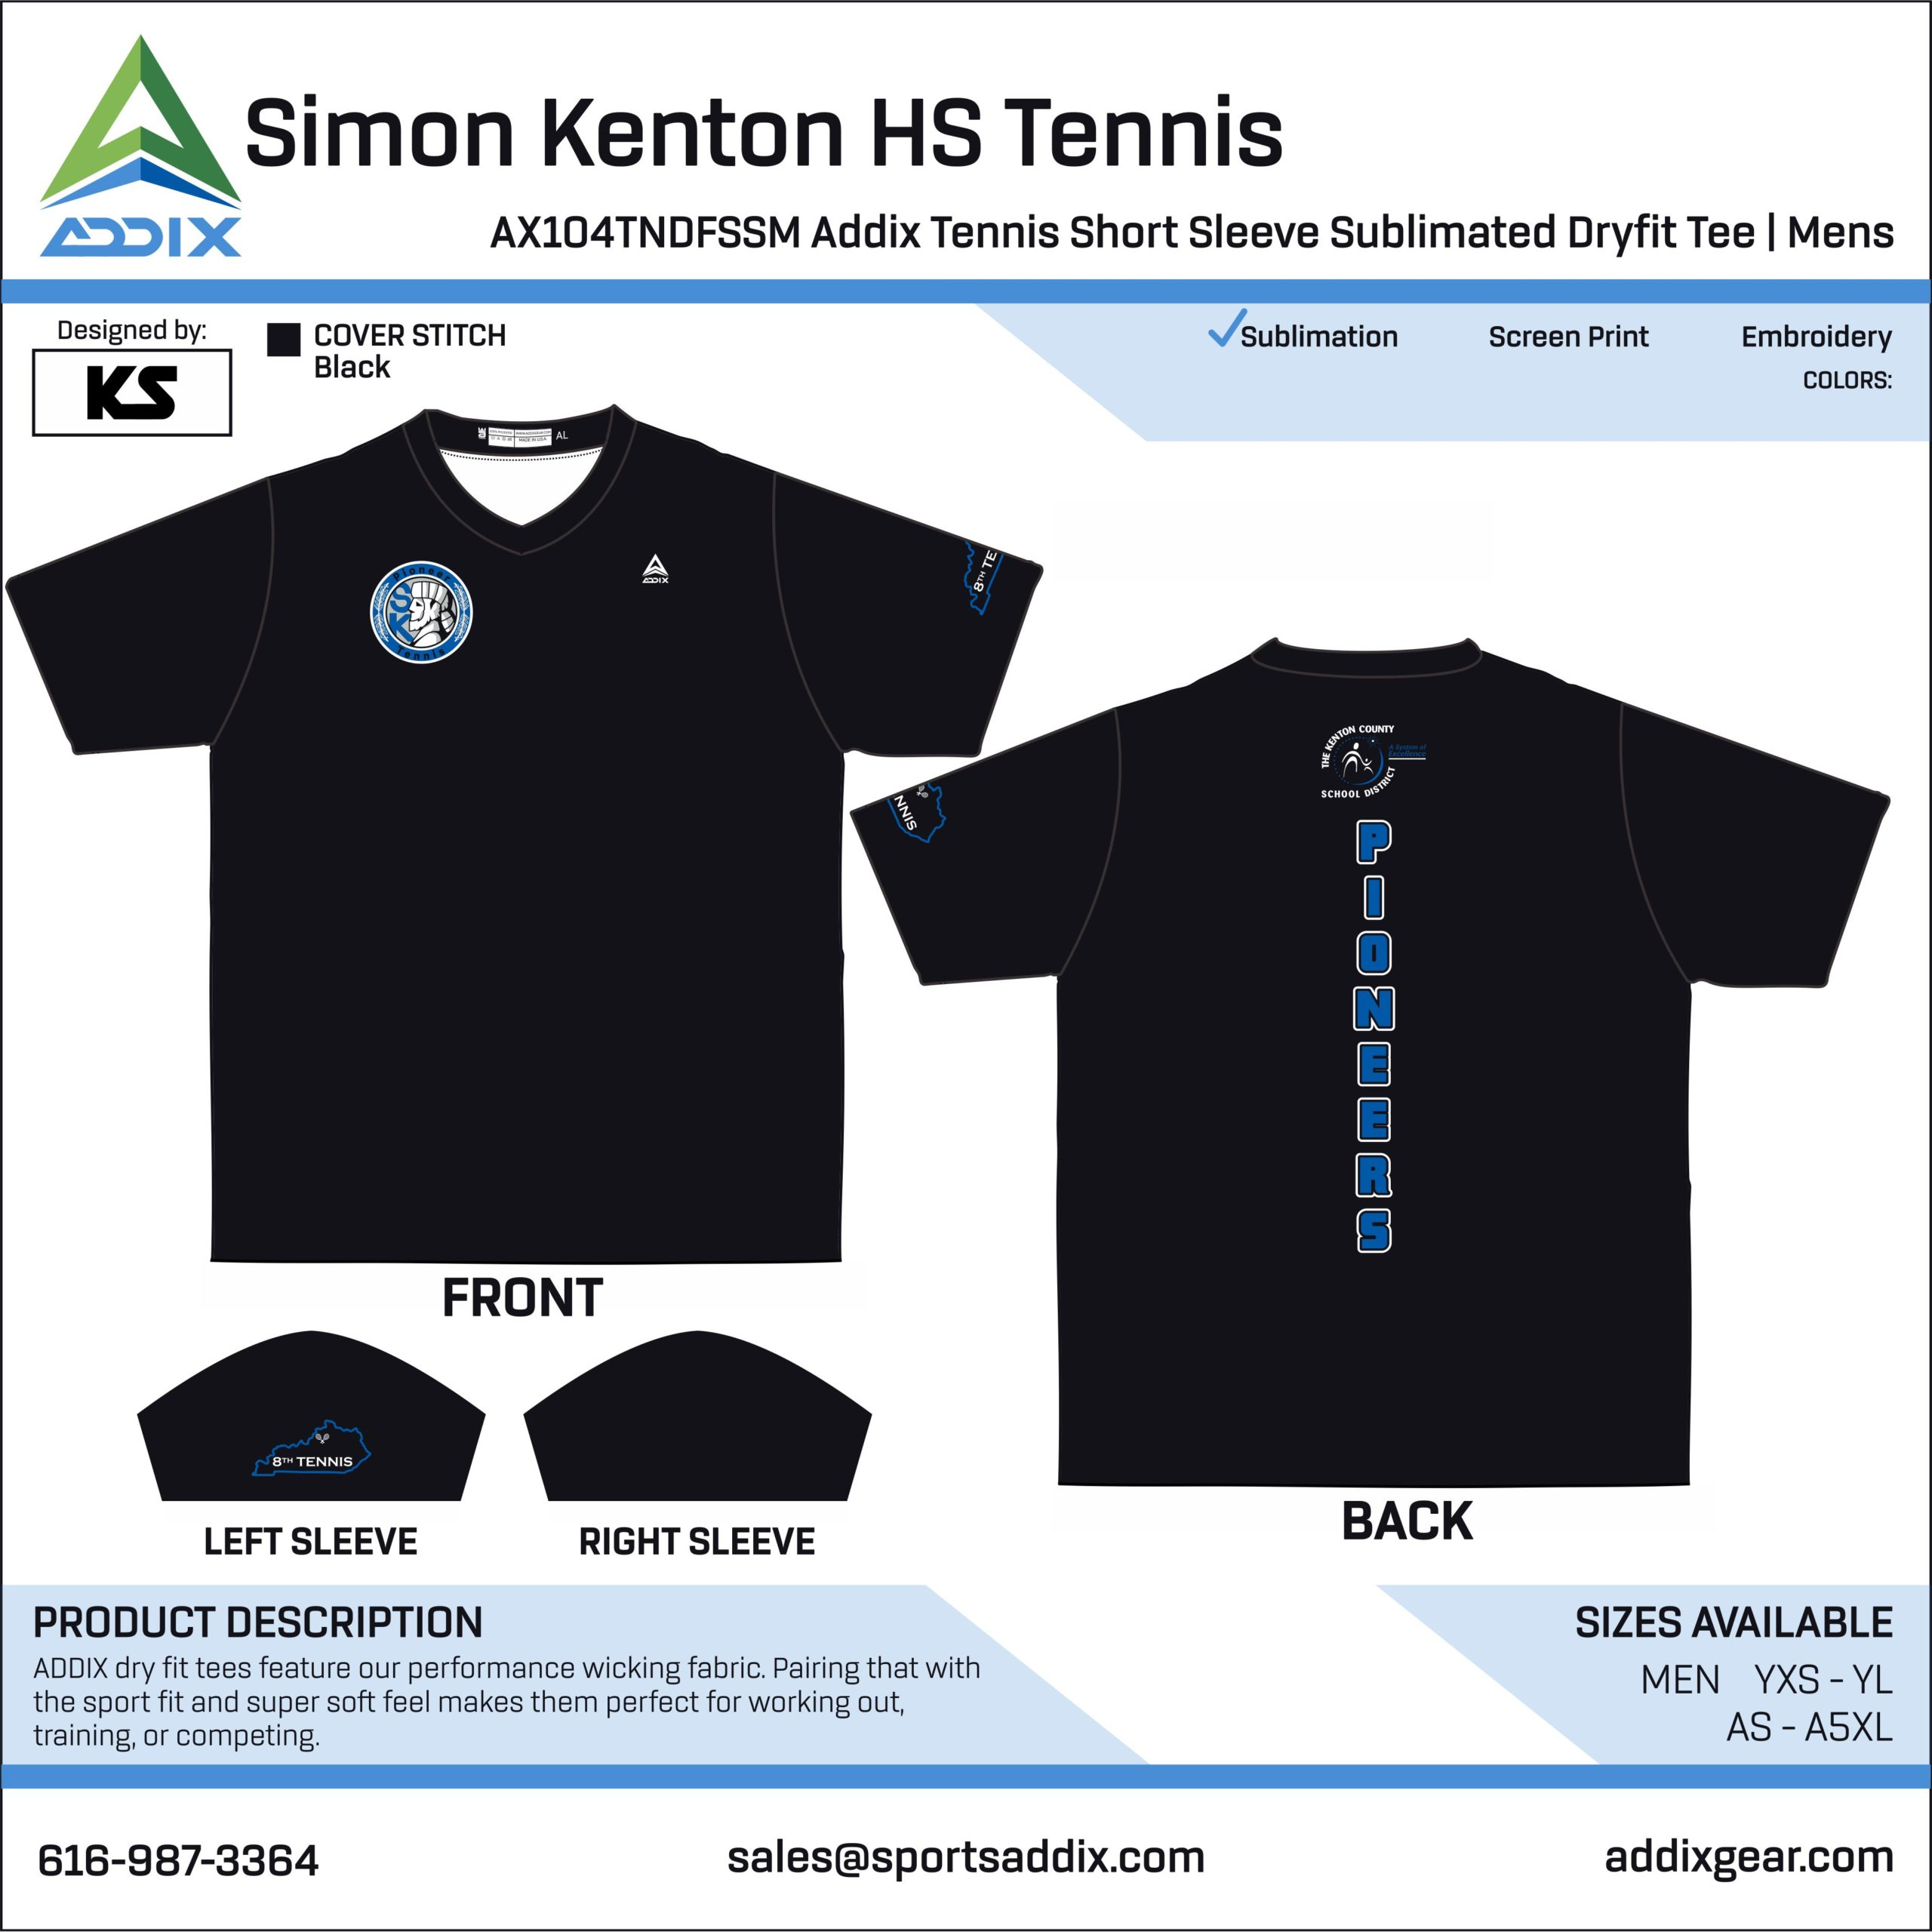 Simon Kenton High School Tennis Uniform